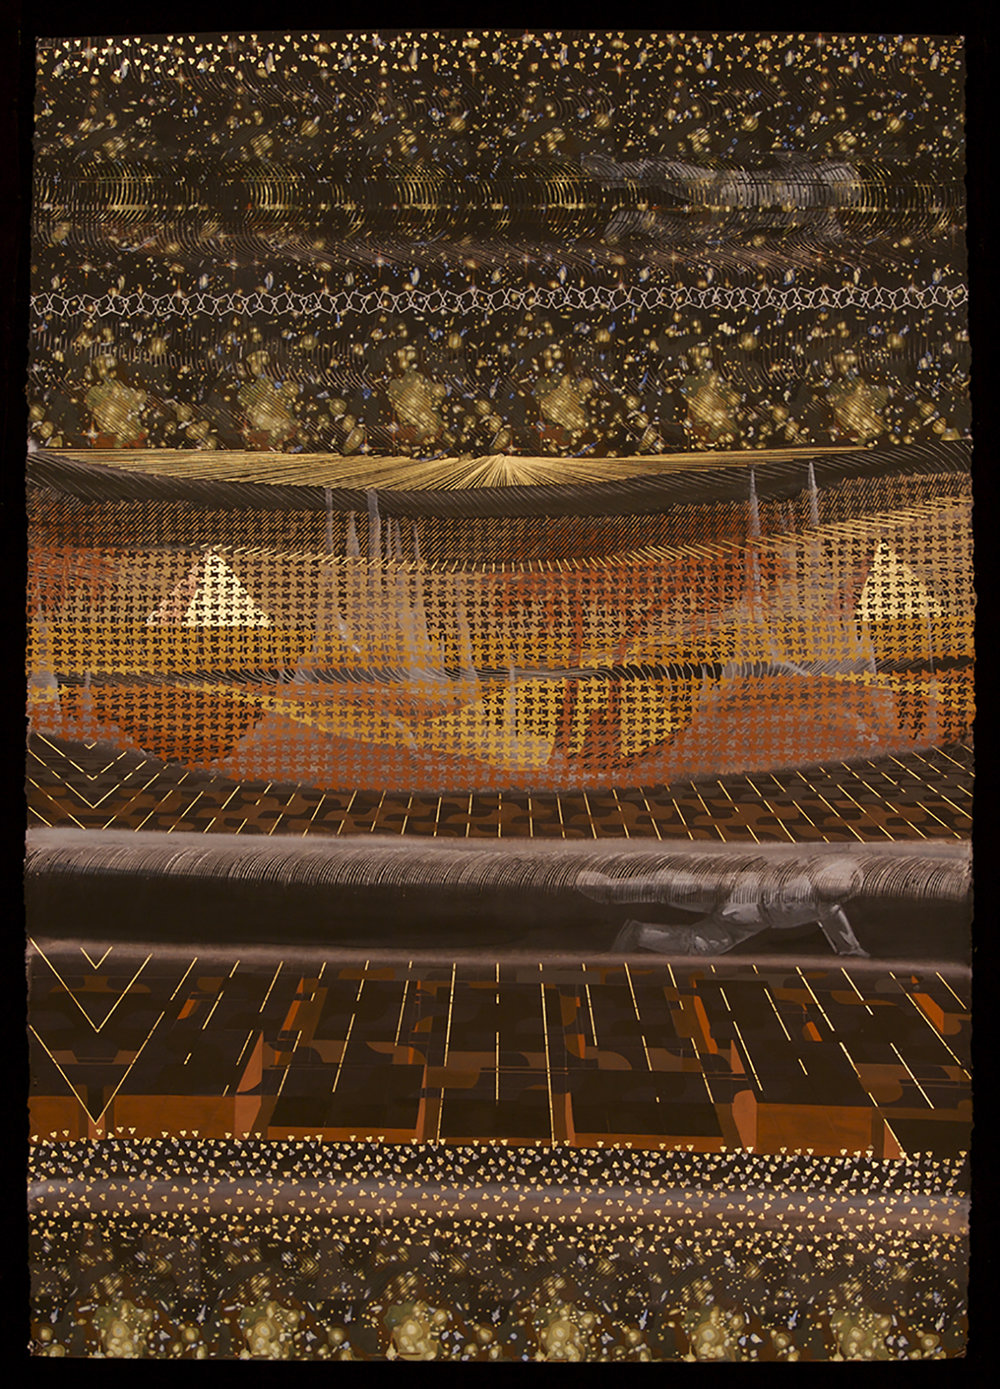 Zoe Pettijohn Schade/ Father's Space/ 2006/ Gouache with Gold Leaf on Paper/ 60 x 40 inches